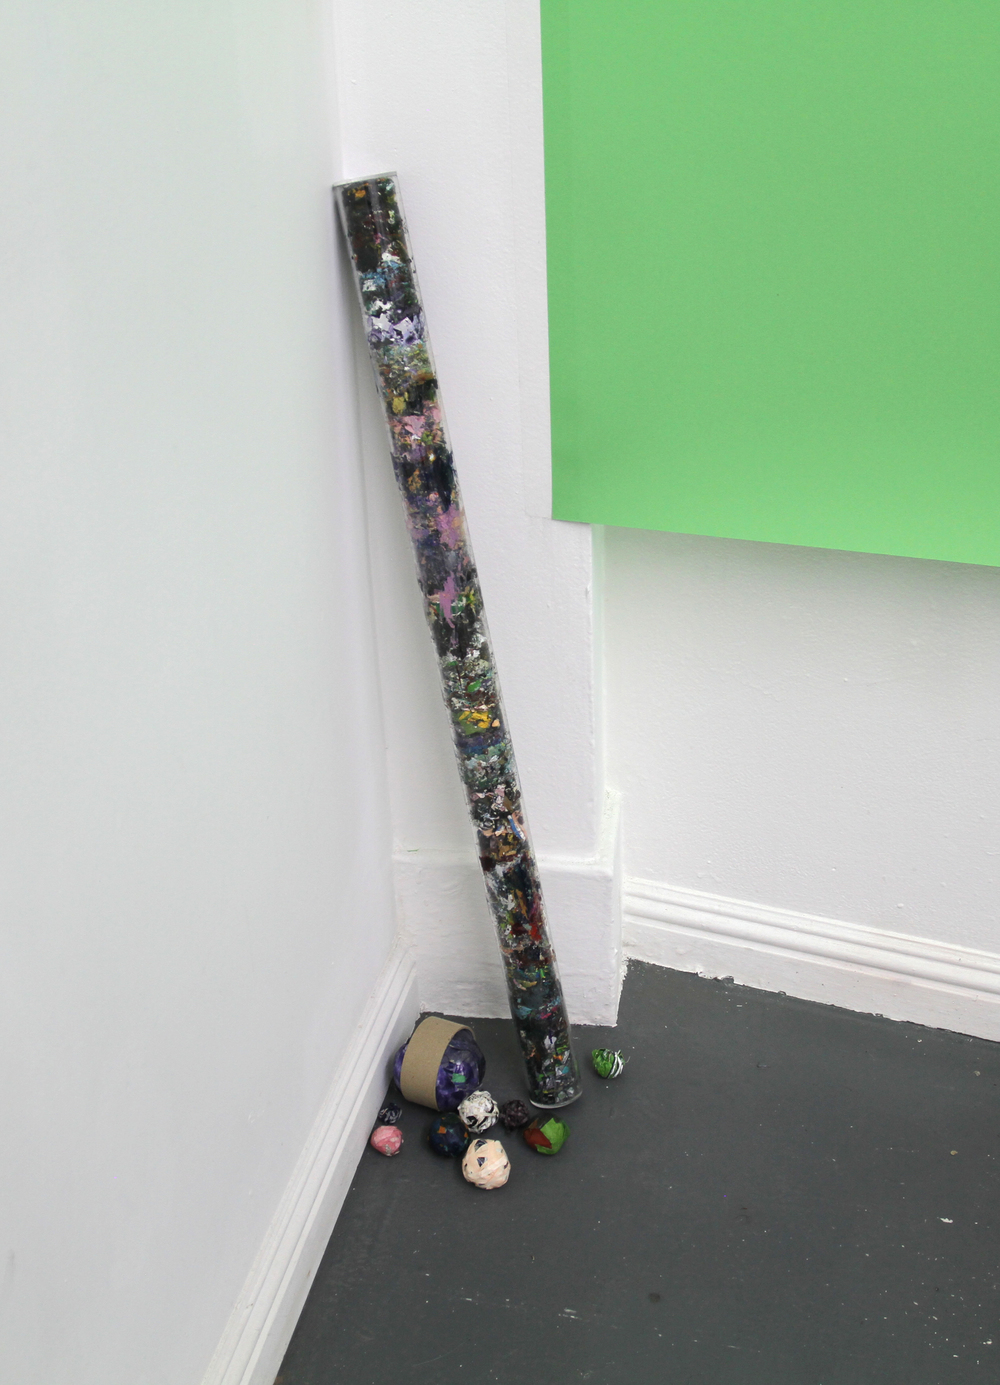 4 Years of Paint Scraps, Installation view.